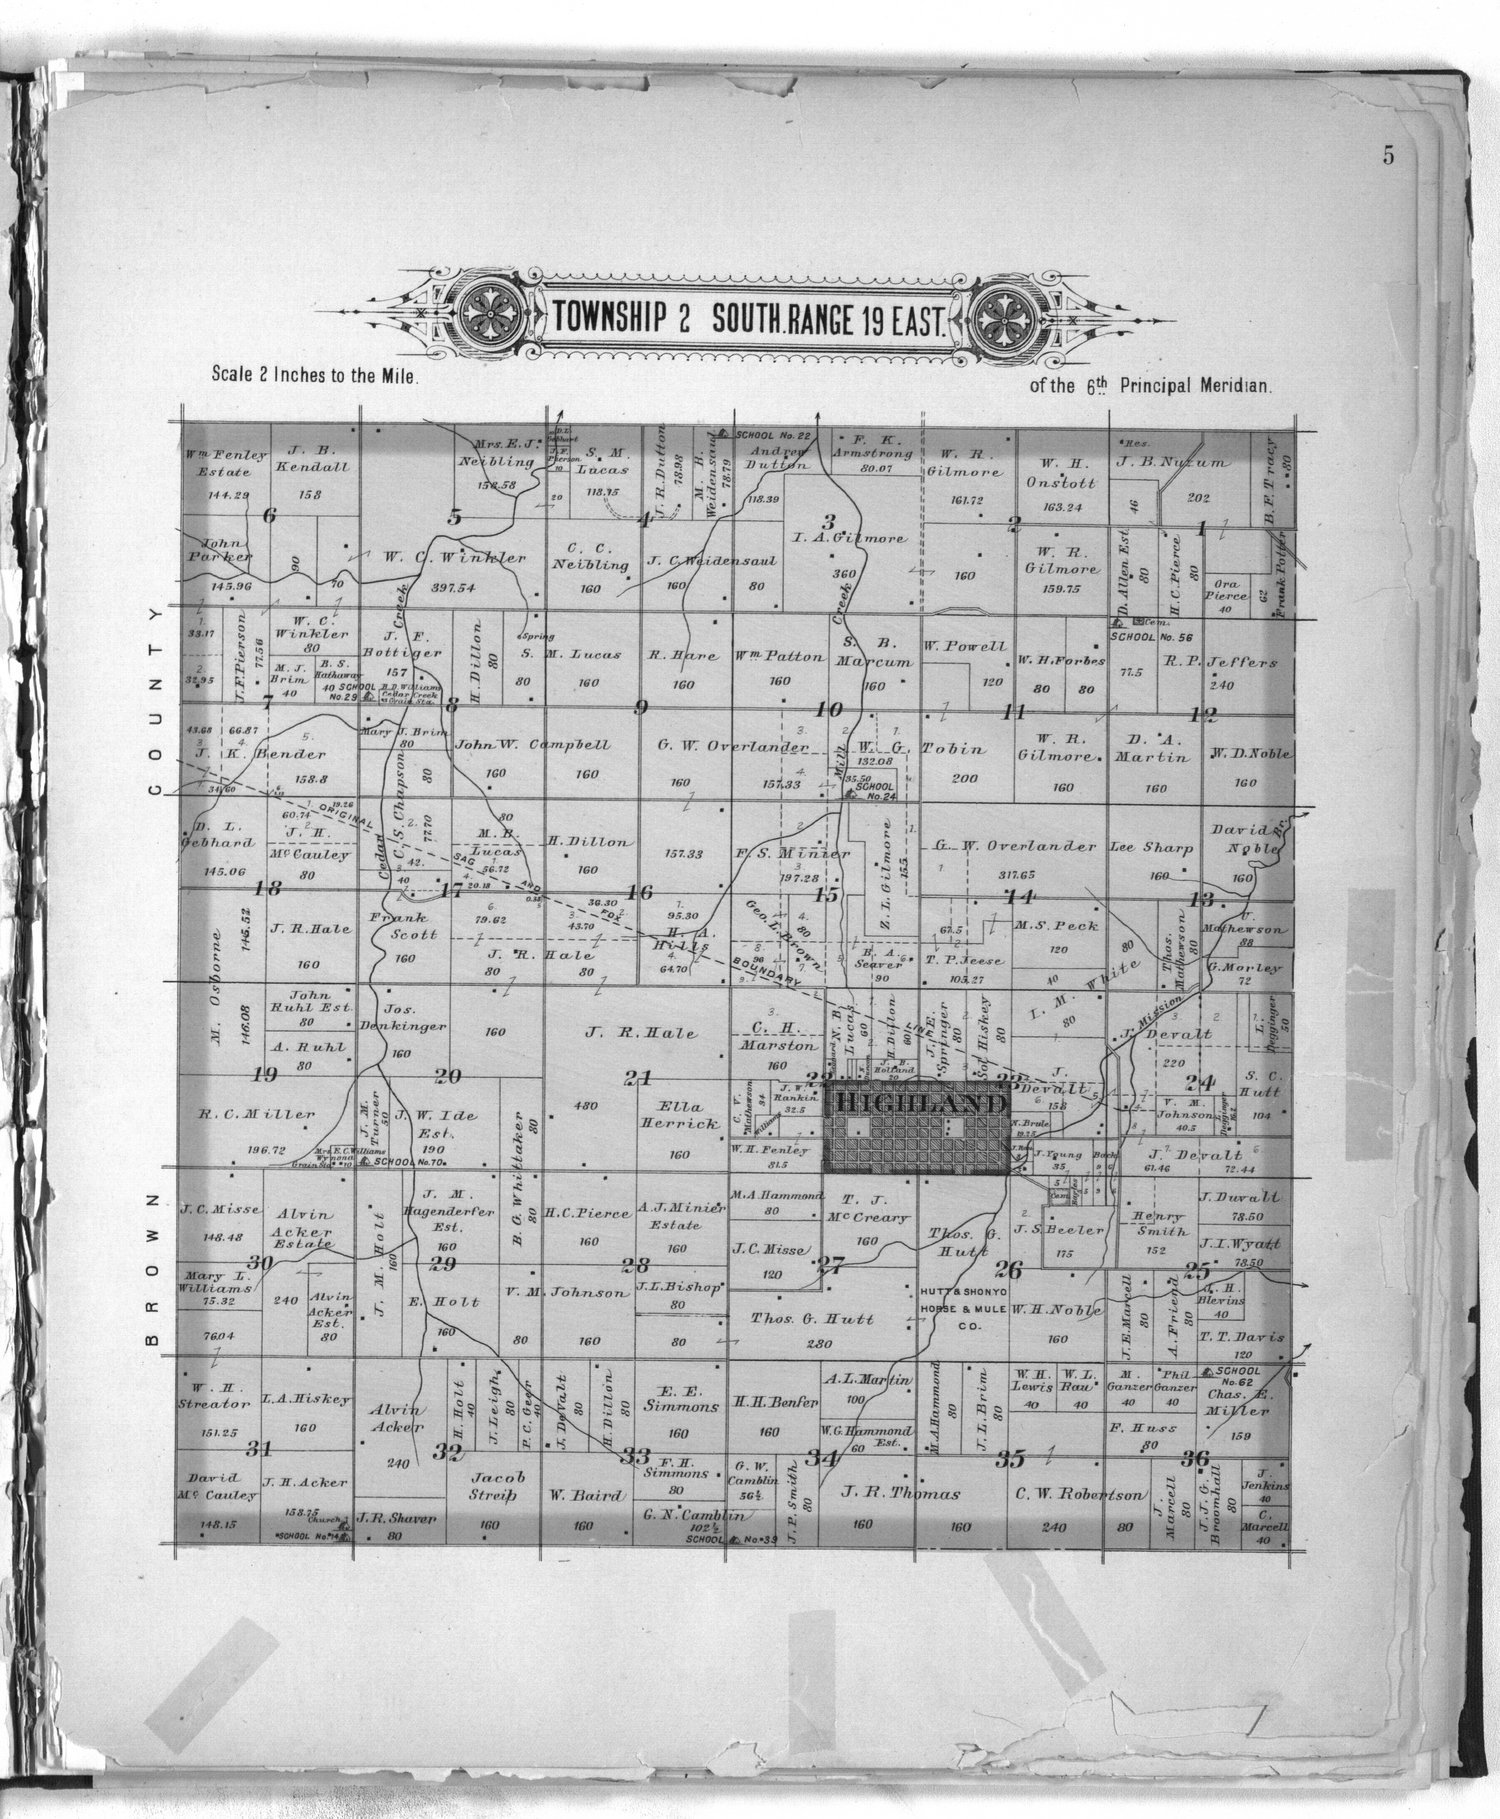 Plat book of Doniphan County, Kansas - 5